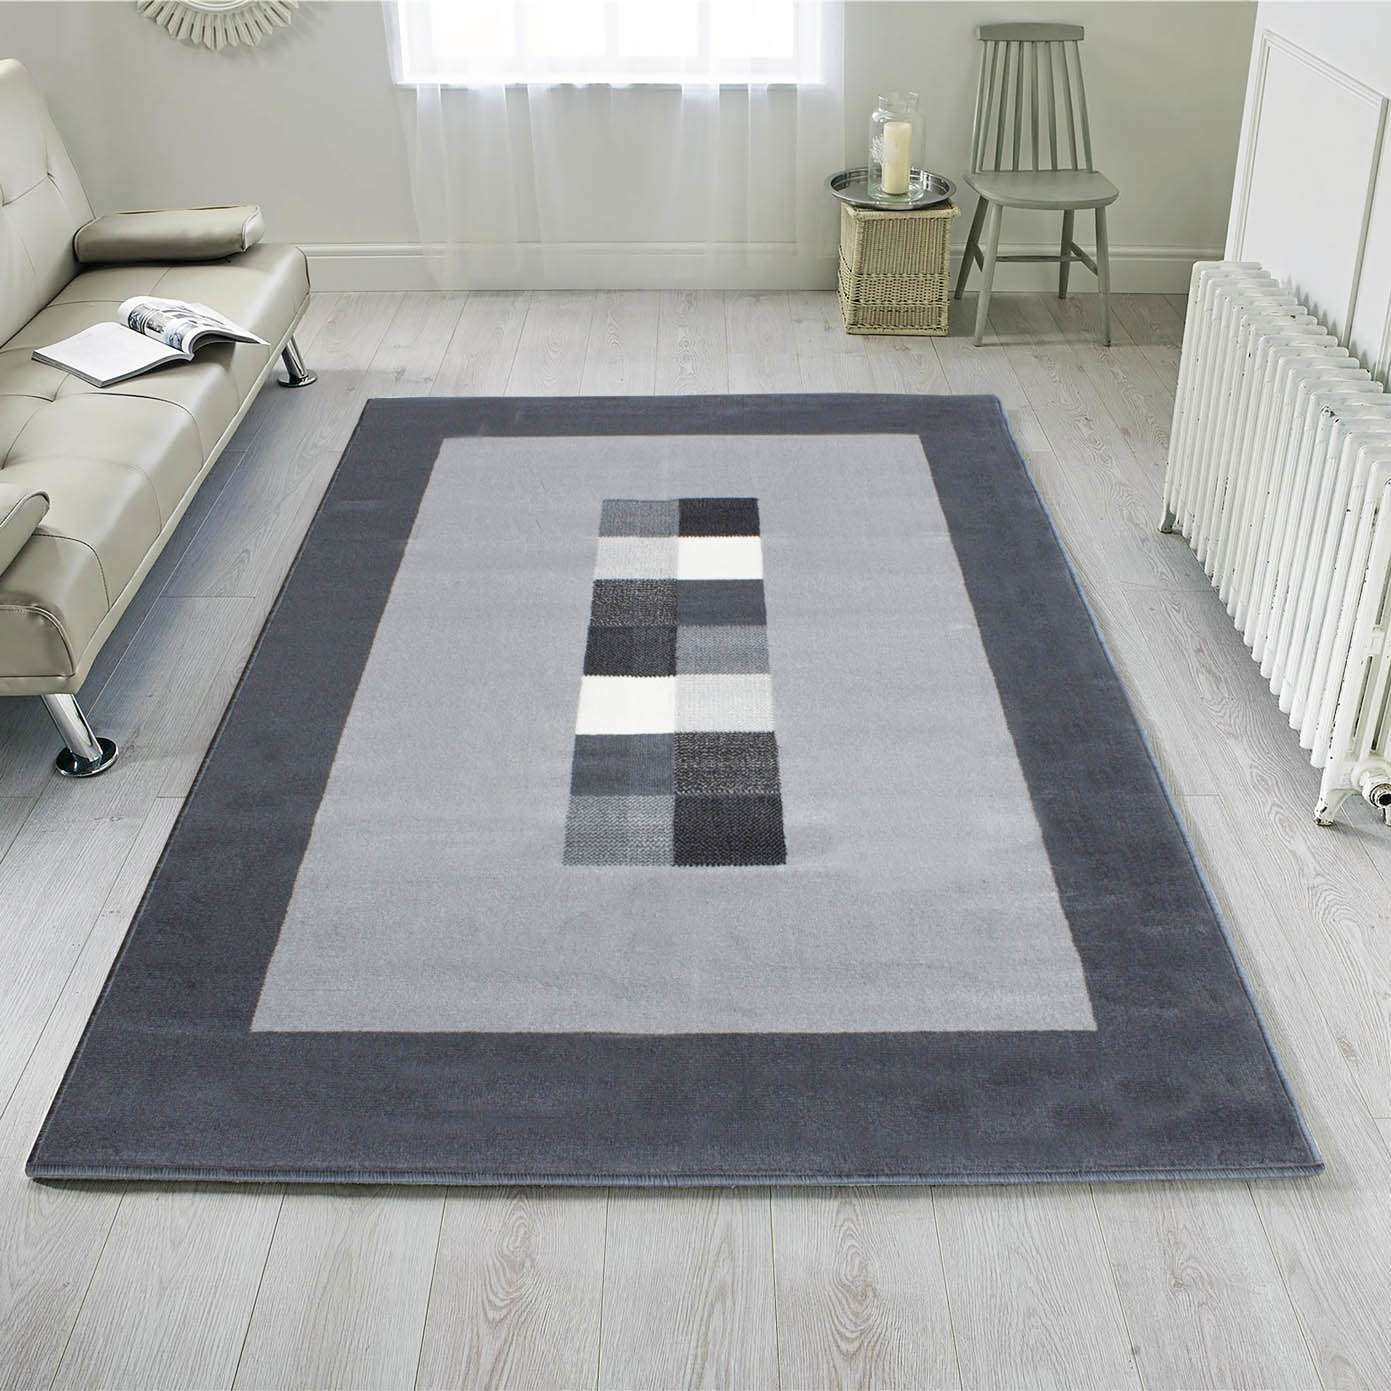 Grey Bordered Squares Large Living Room, Large Living Room Rugs